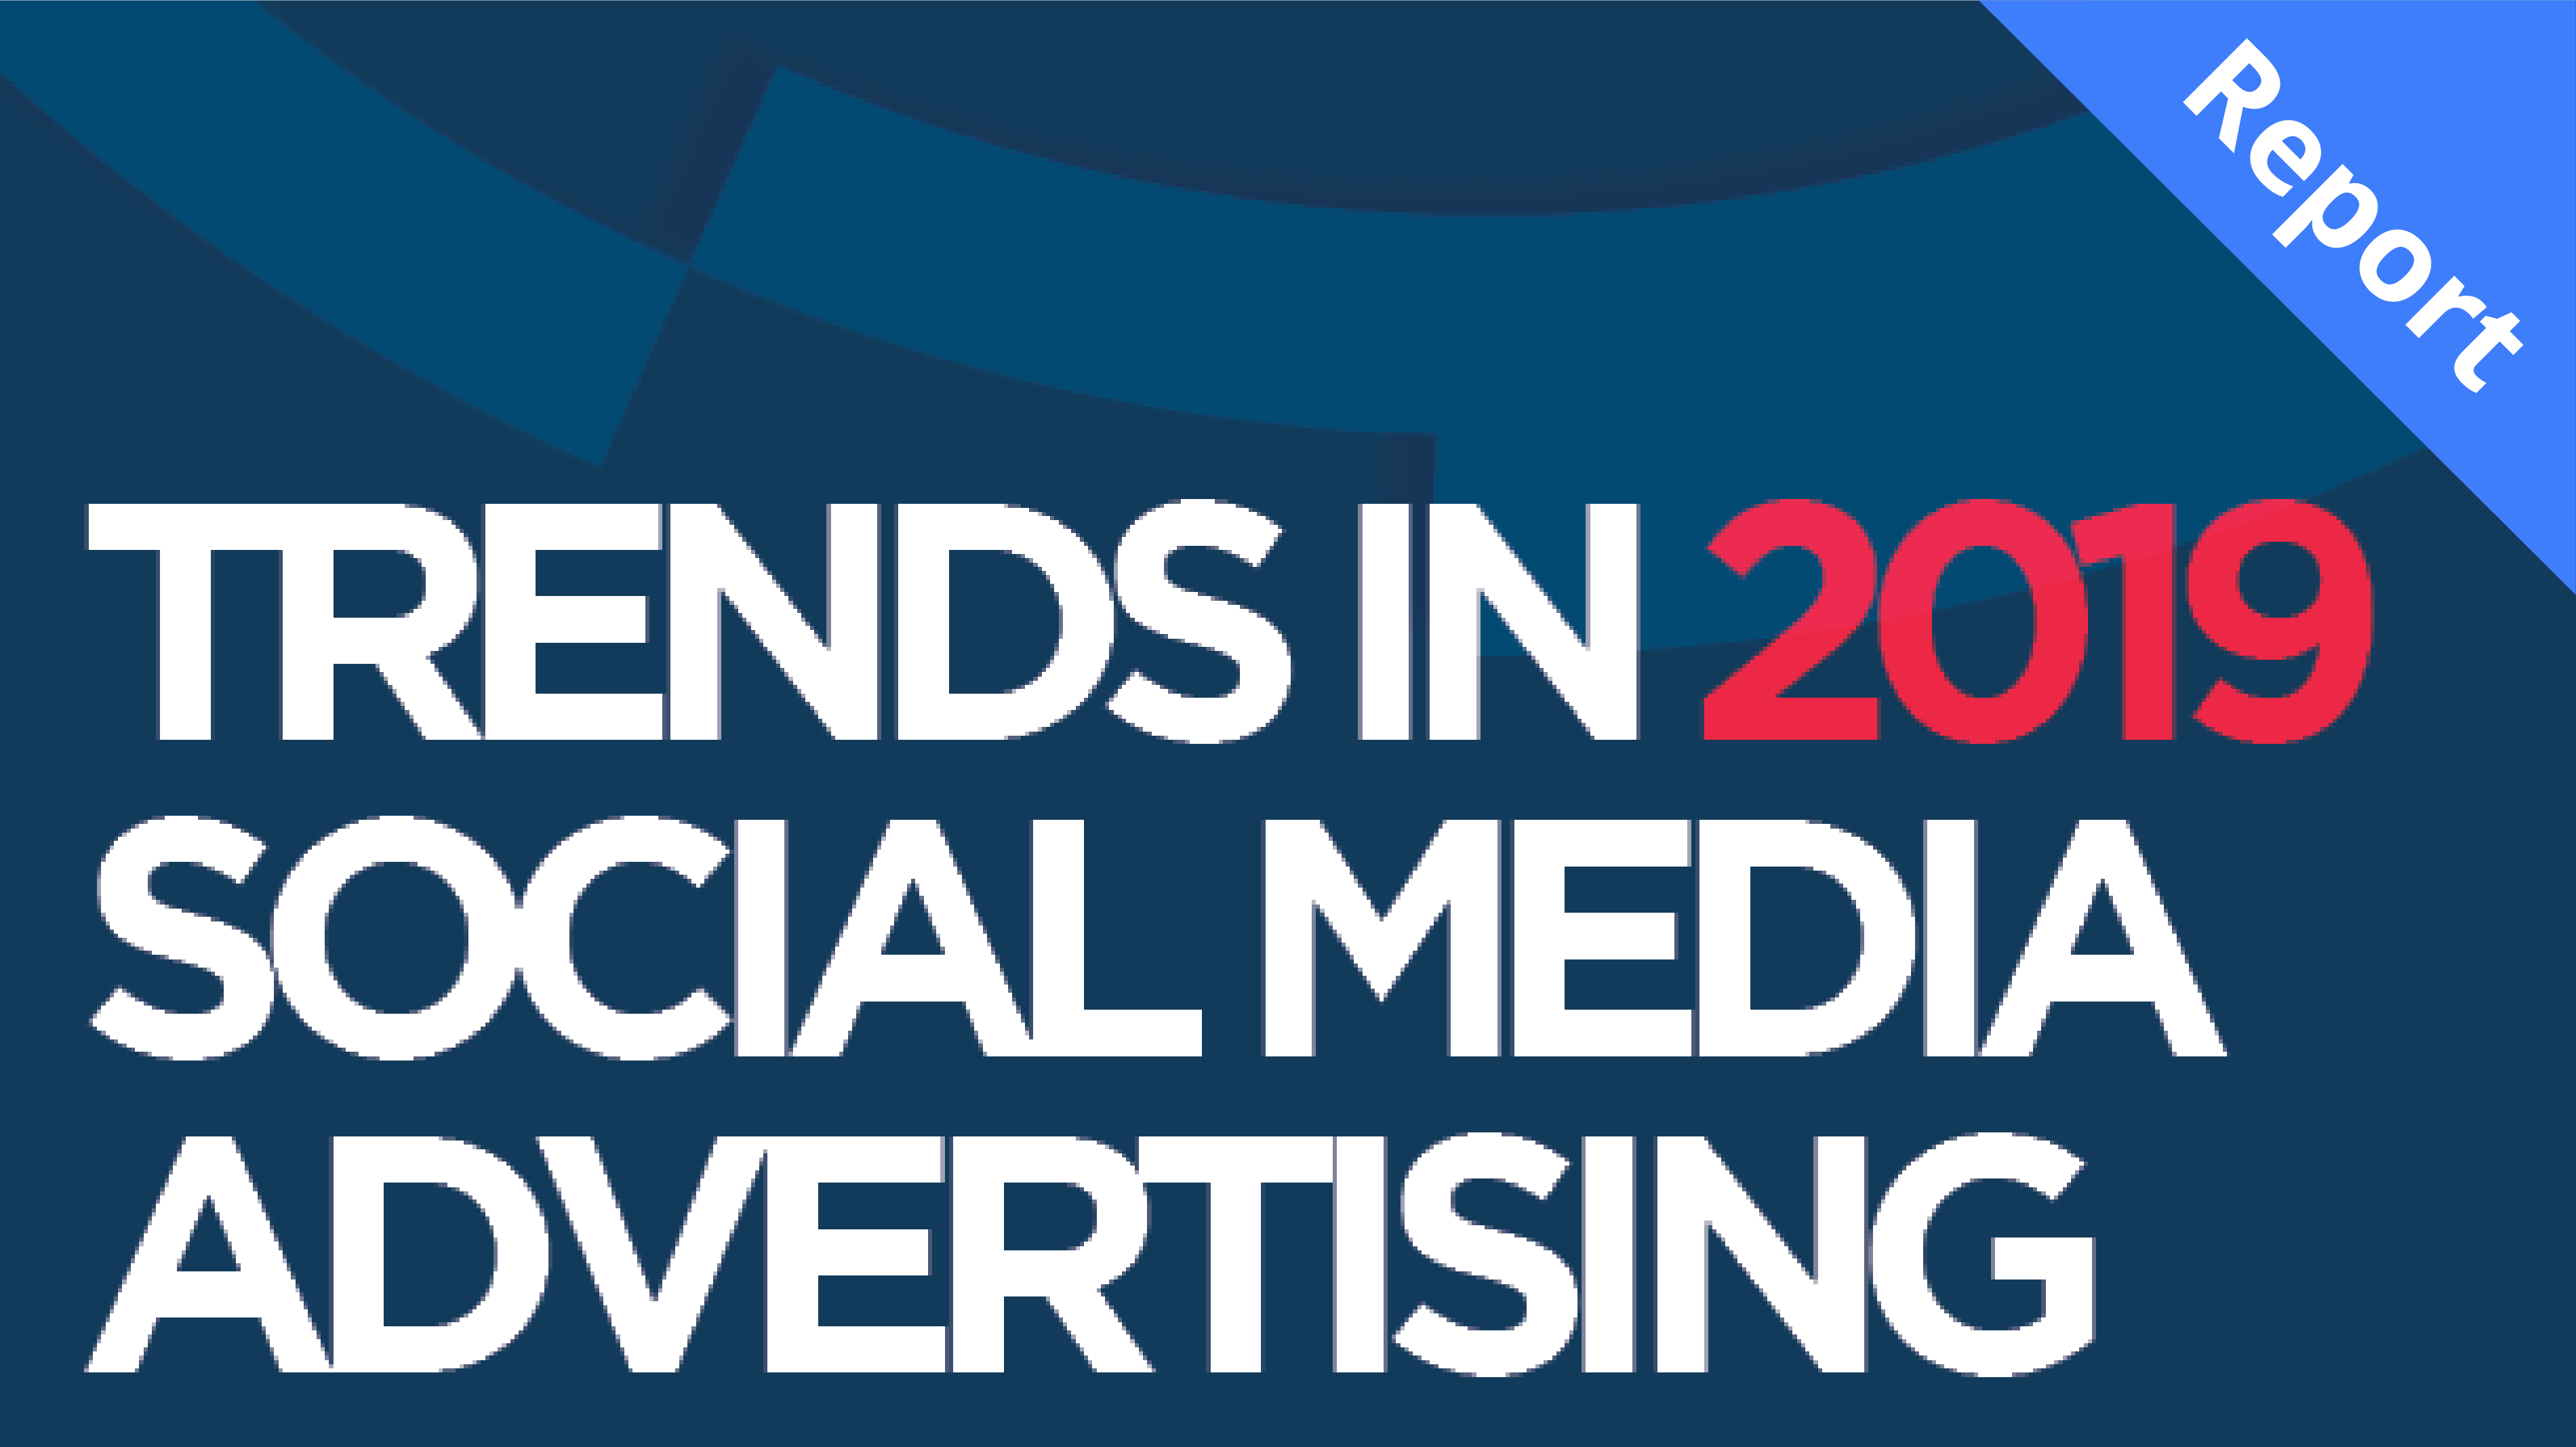 Trends in Social Media Advertising 2019